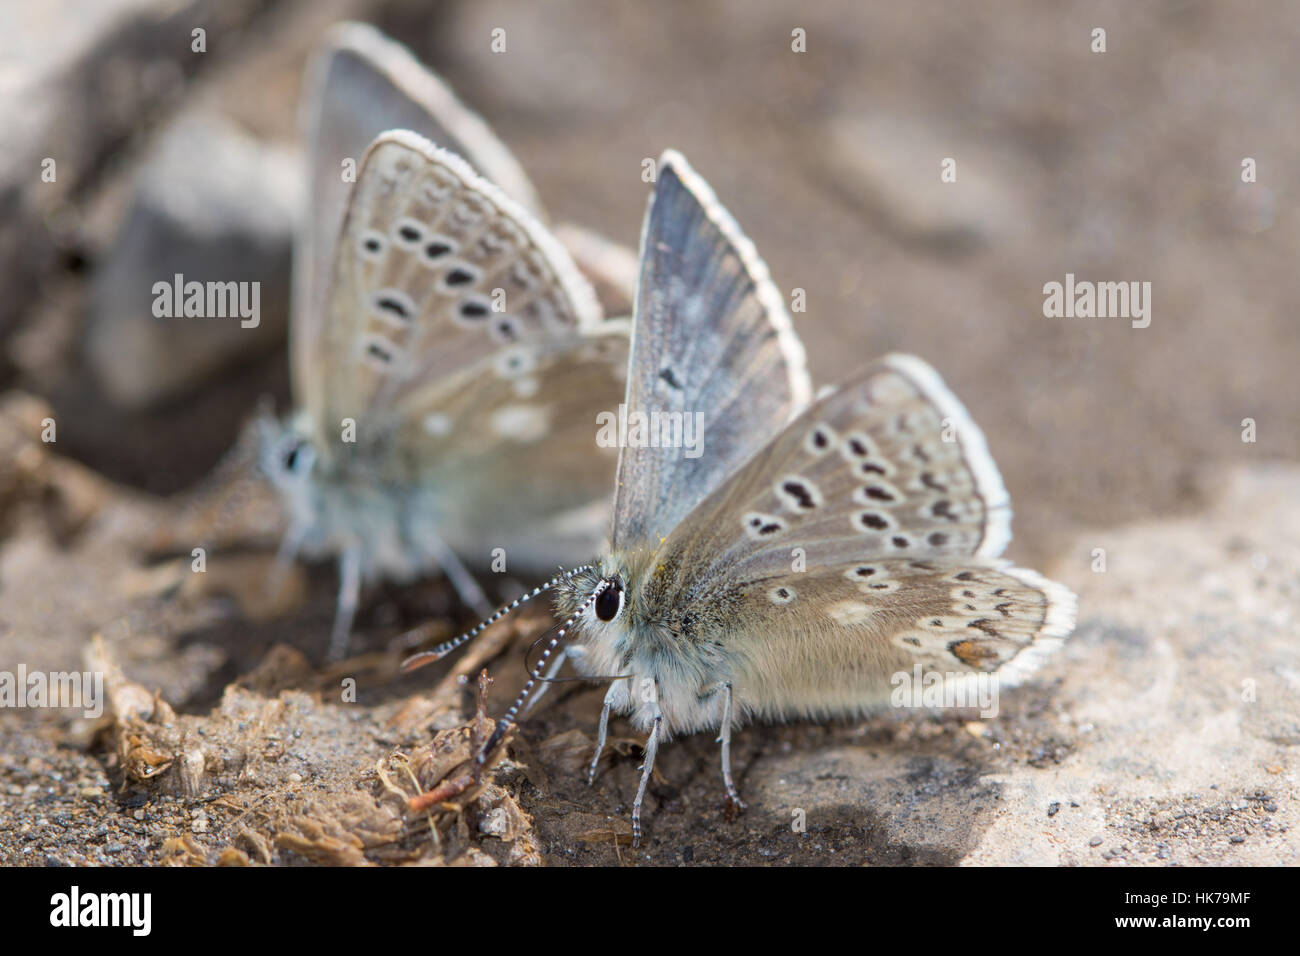 pair of Glandon Blue (Plebejus glandon) butterflies feeding on minerals from damp soil - Stock Image